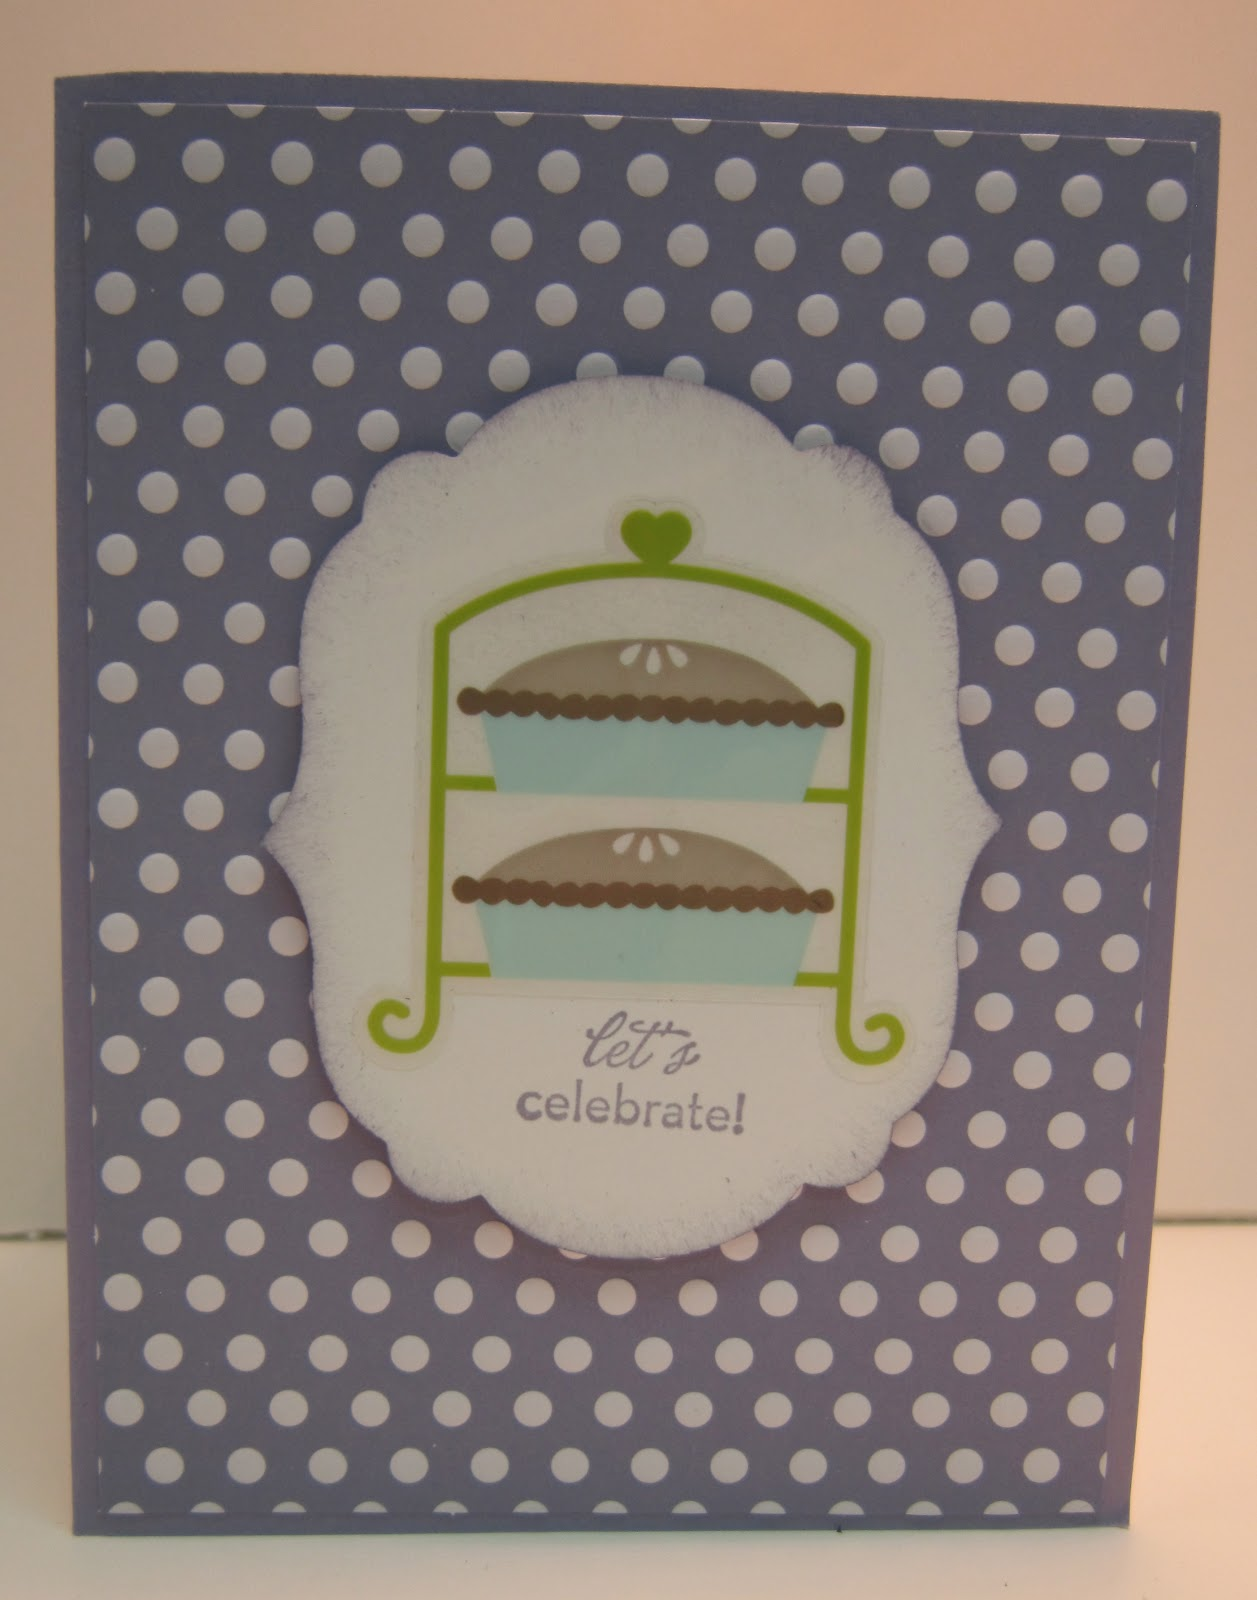 Happy birthday pop up card just sponge it wisteria wonder whisper white card stock wisteria wonder classic ink sweet shop designer stickers on your birthday stamp set bookmarktalkfo Image collections